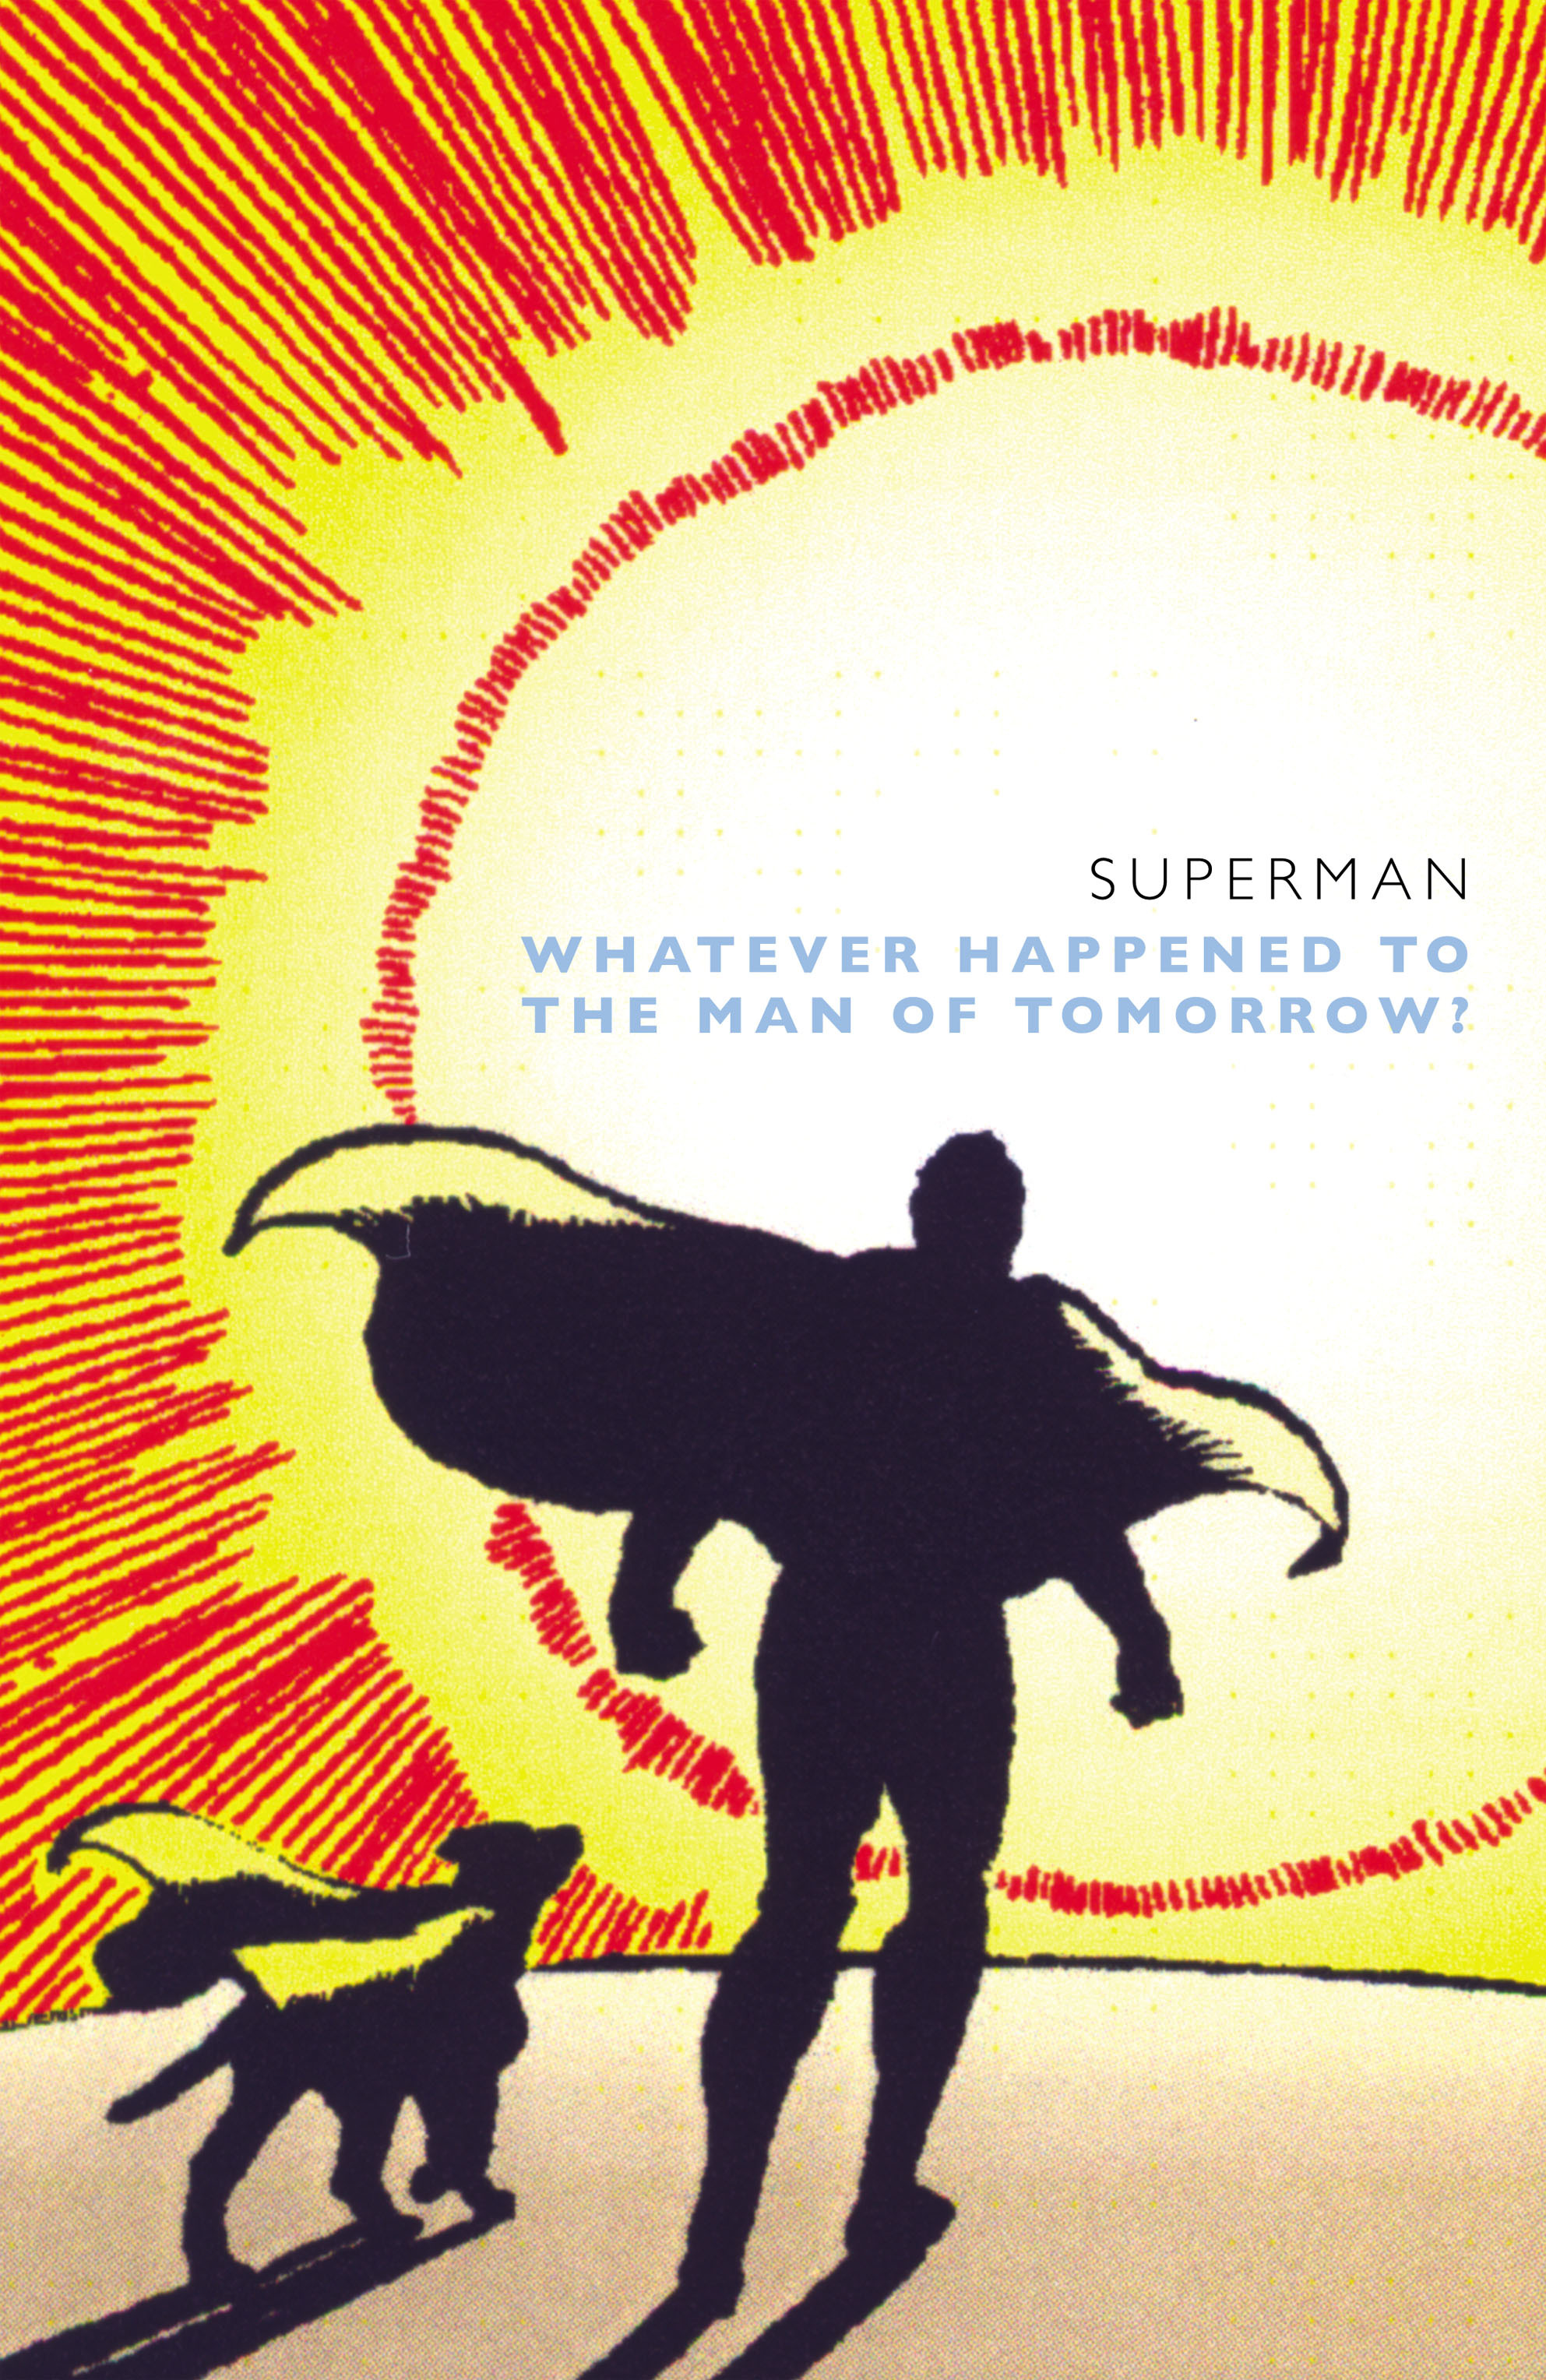 Read online Superman: Whatever Happened to the Man of Tomorrow? comic -  Issue # TPB - 2